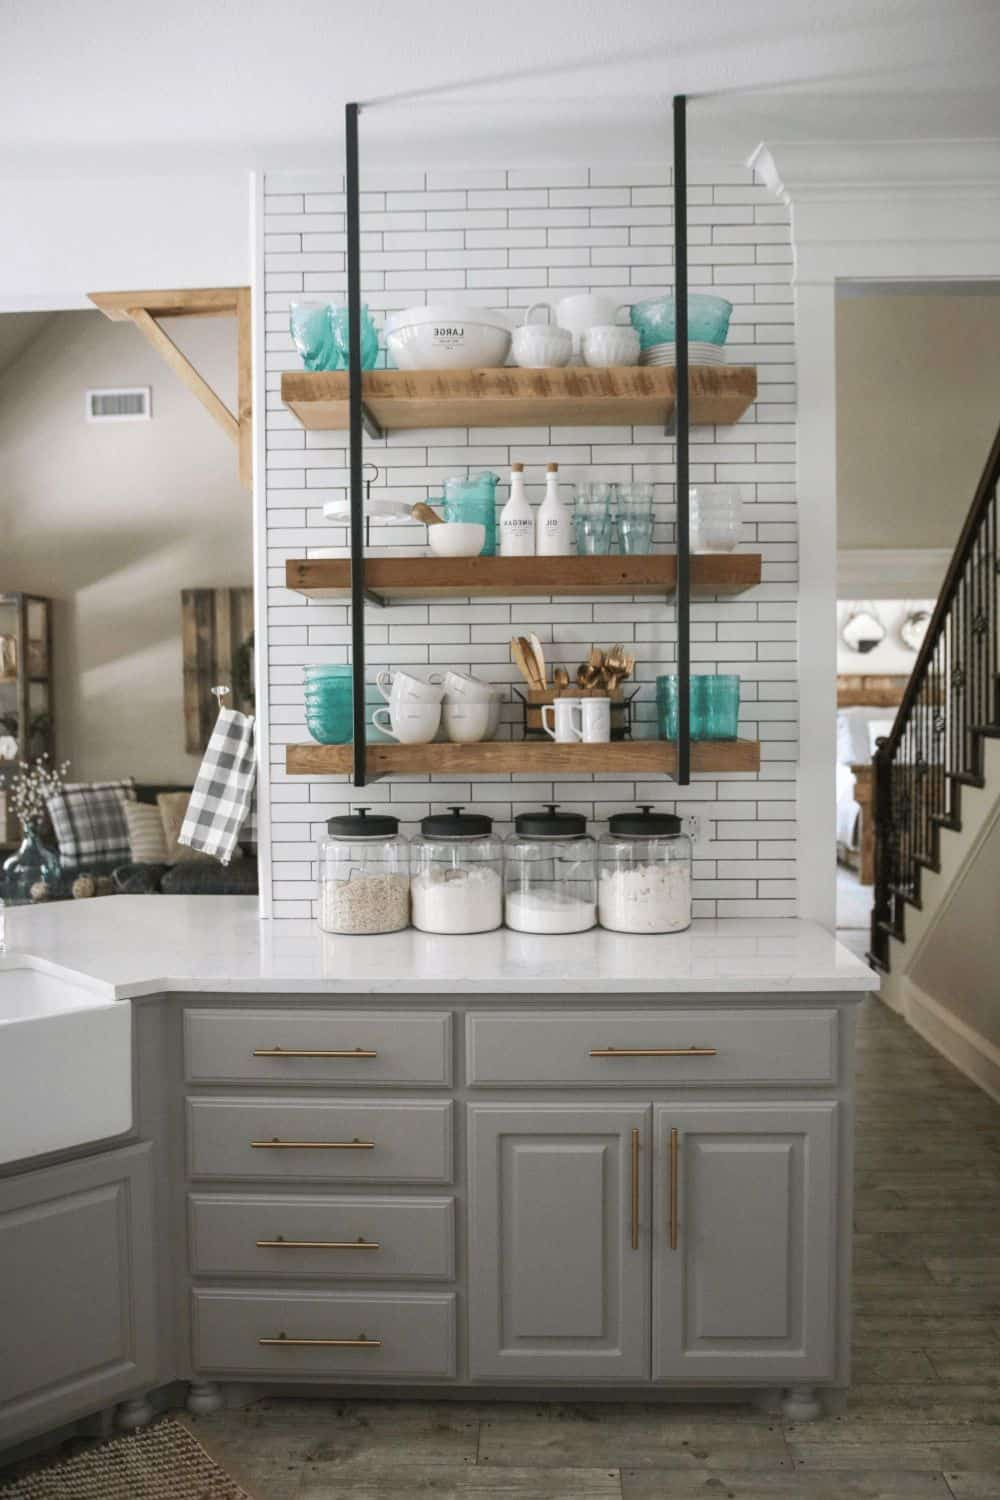 open shelving against tiles